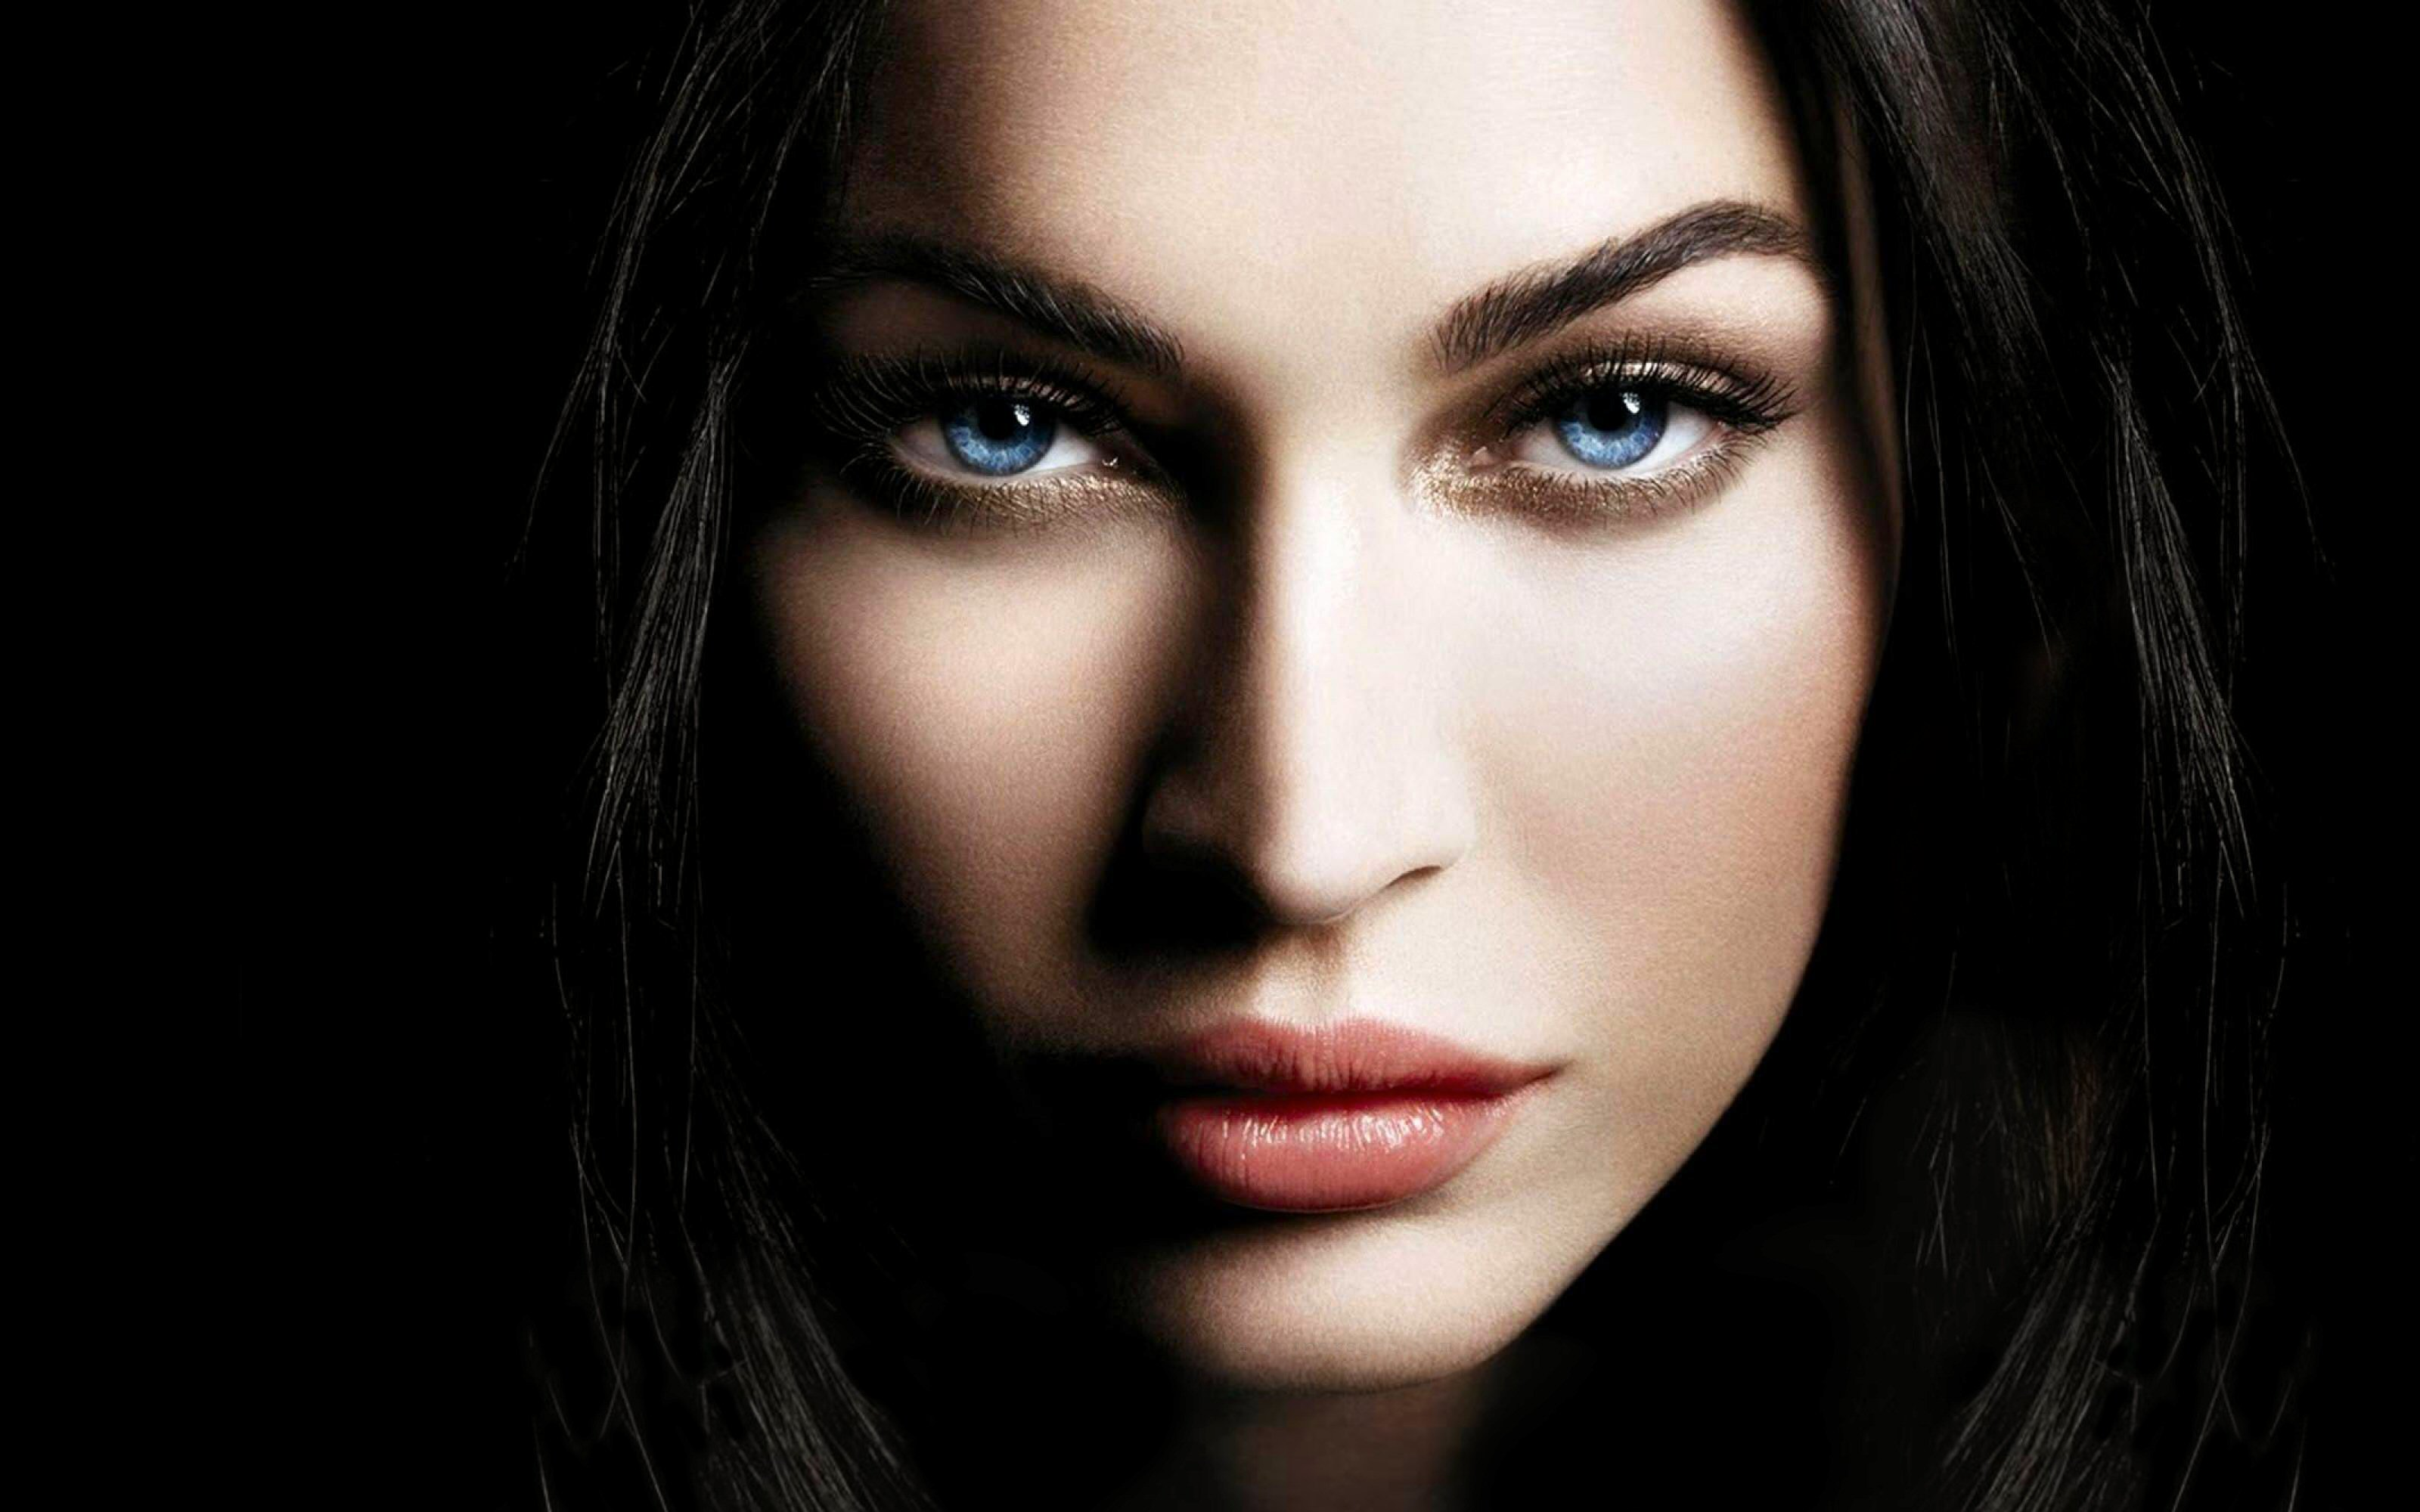 Megan Fox Wallpapers Iphone  Wallpaper